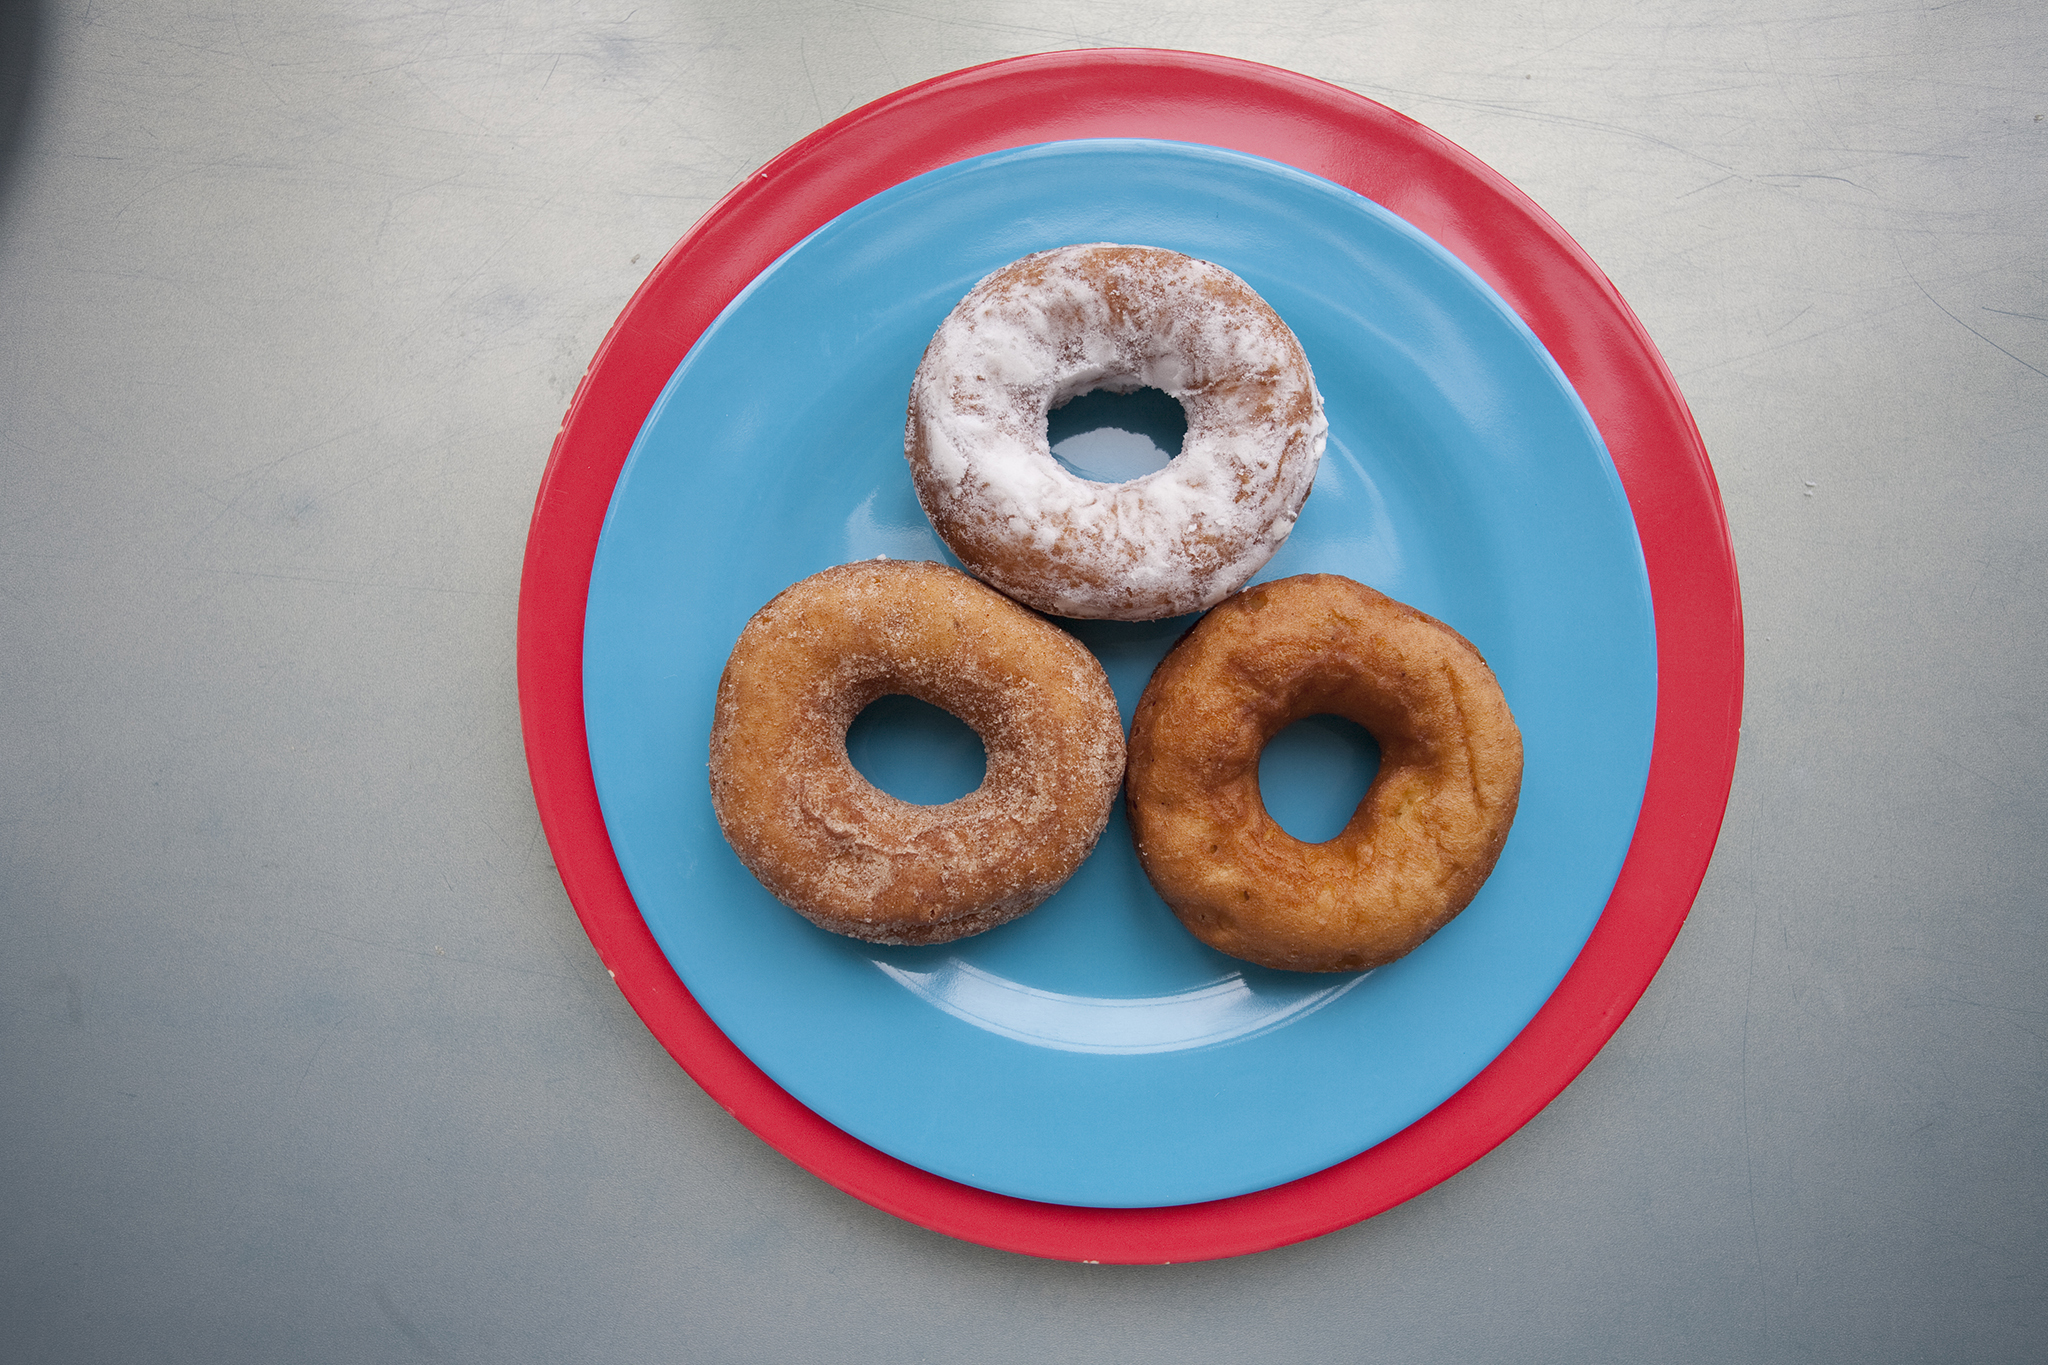 Best doughnut shops for purists: 606 R&D